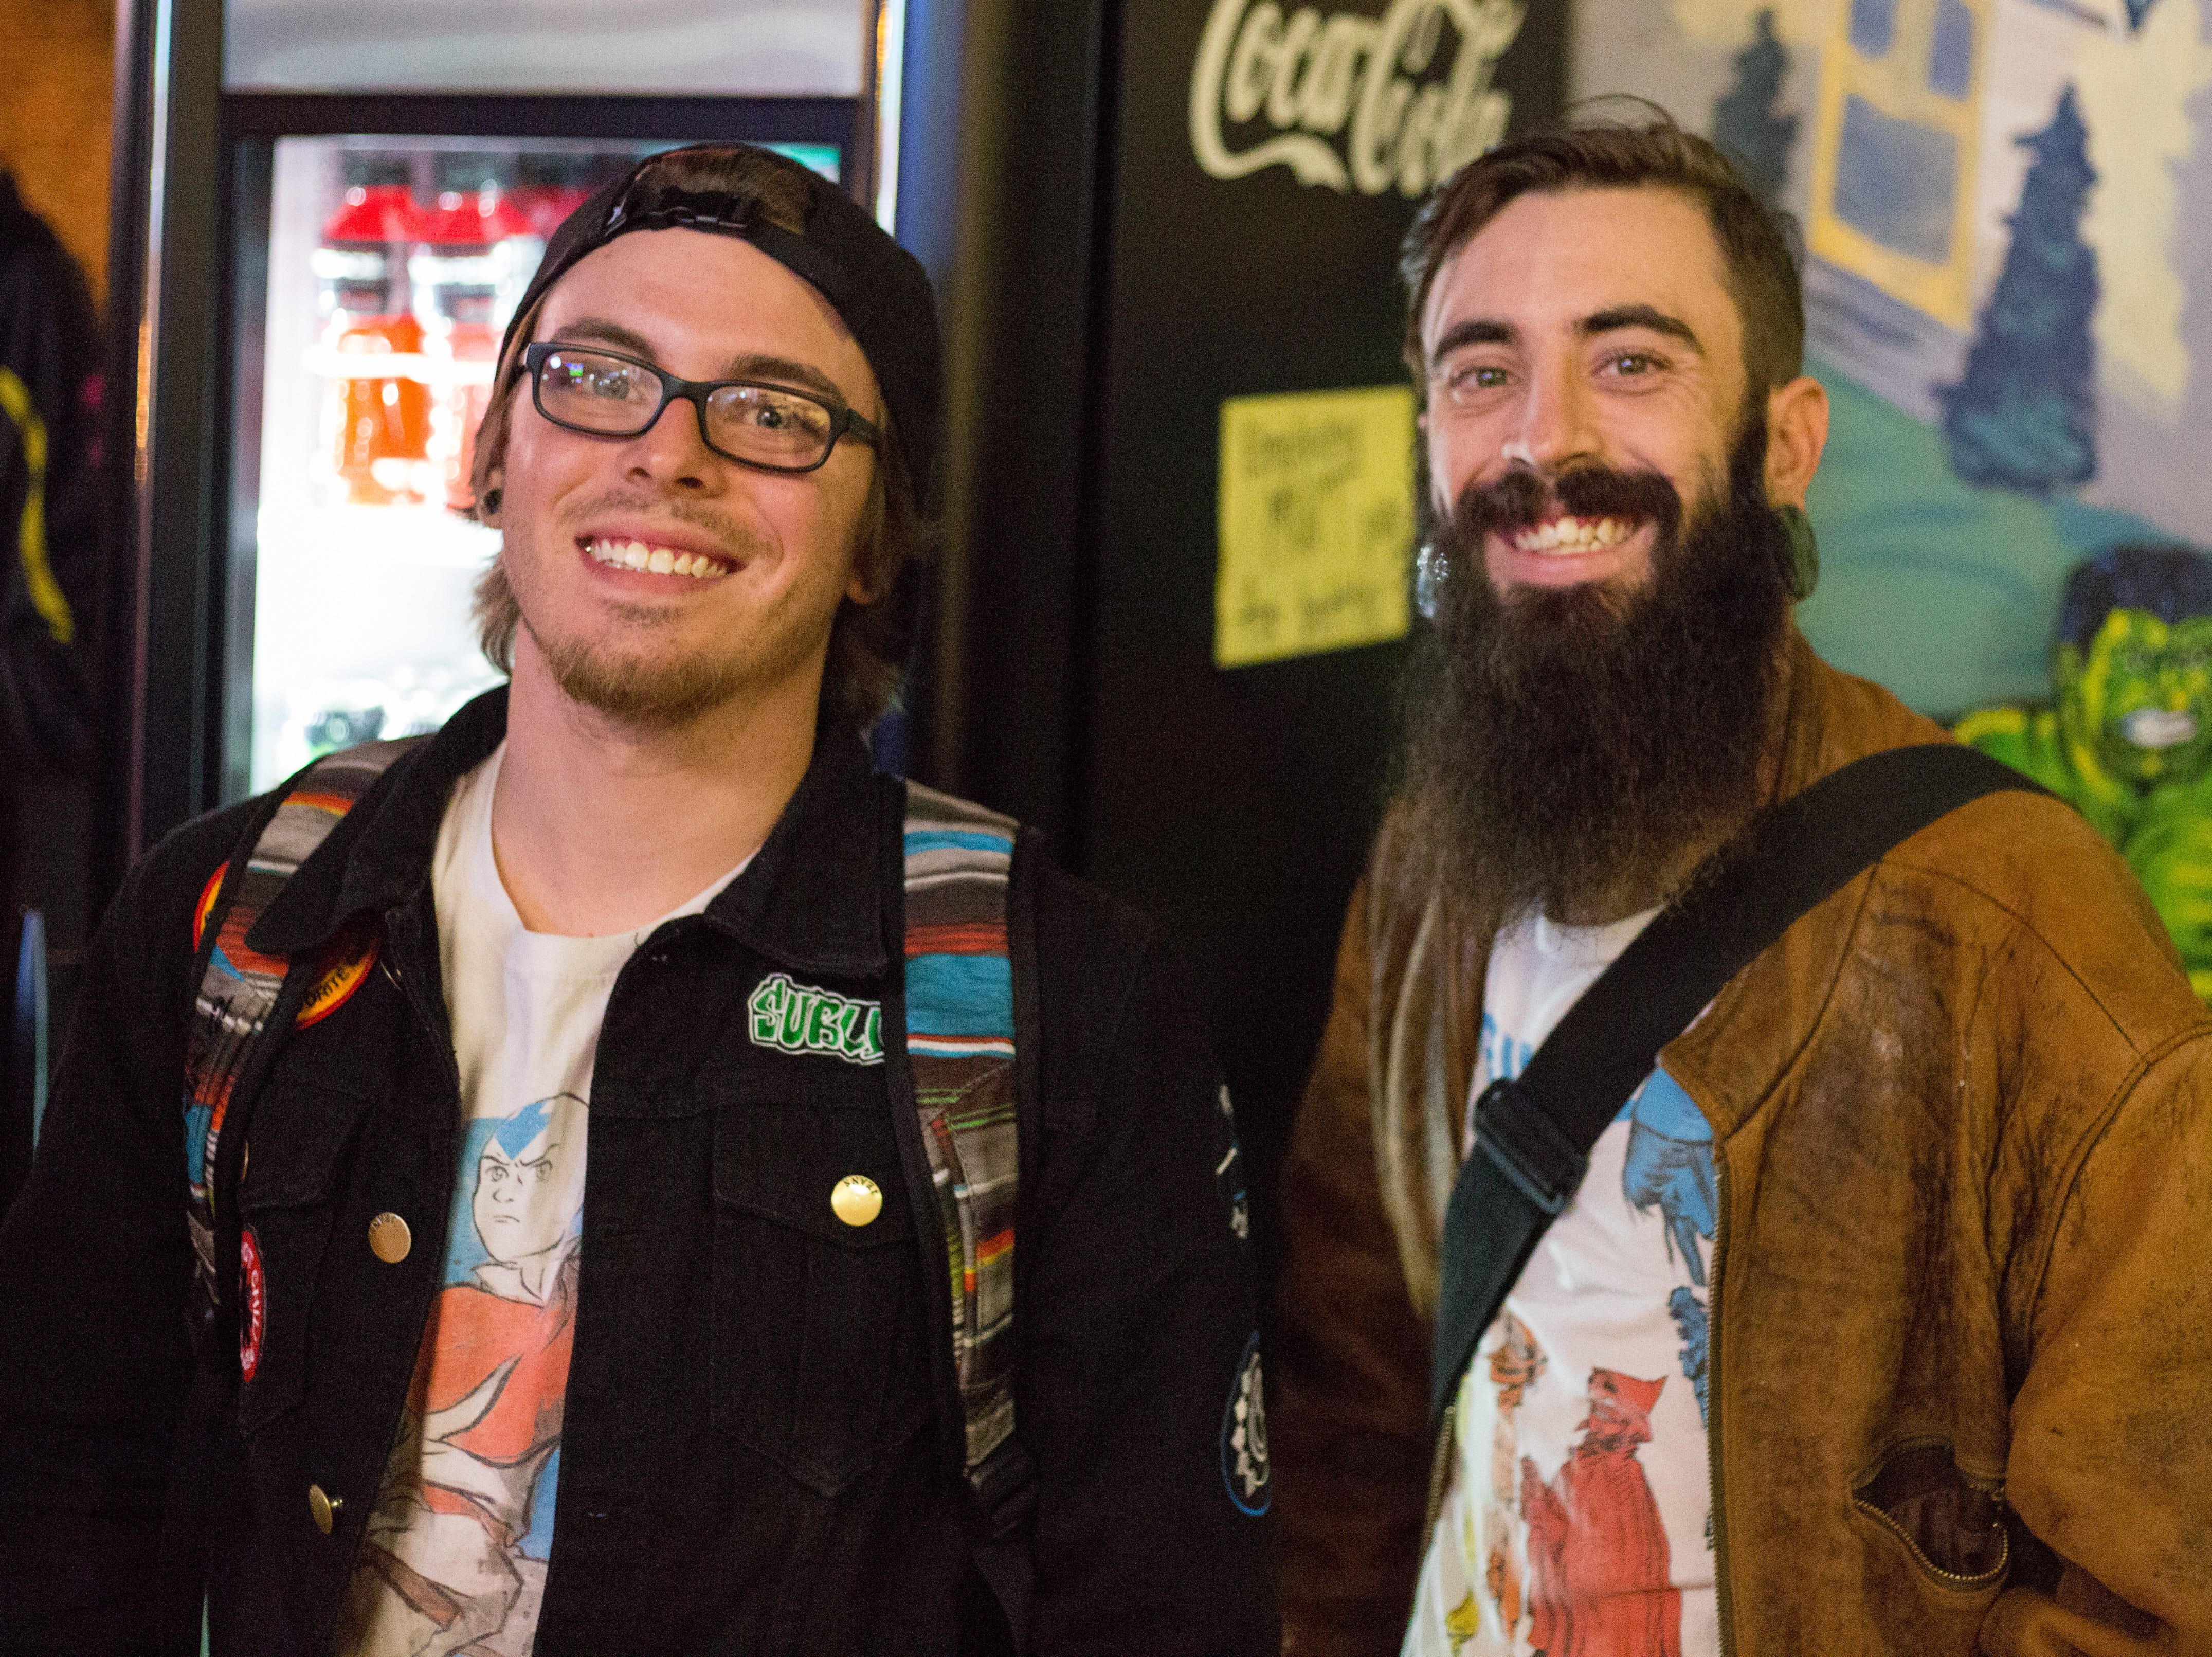 Austin Thornburg and Taylor Tullis enjoy the Super Smash Brothers Ultimate Tournament presented by Big Dad Games at Filly's Game and Grill in Gallatin on Monday, Jan 14.